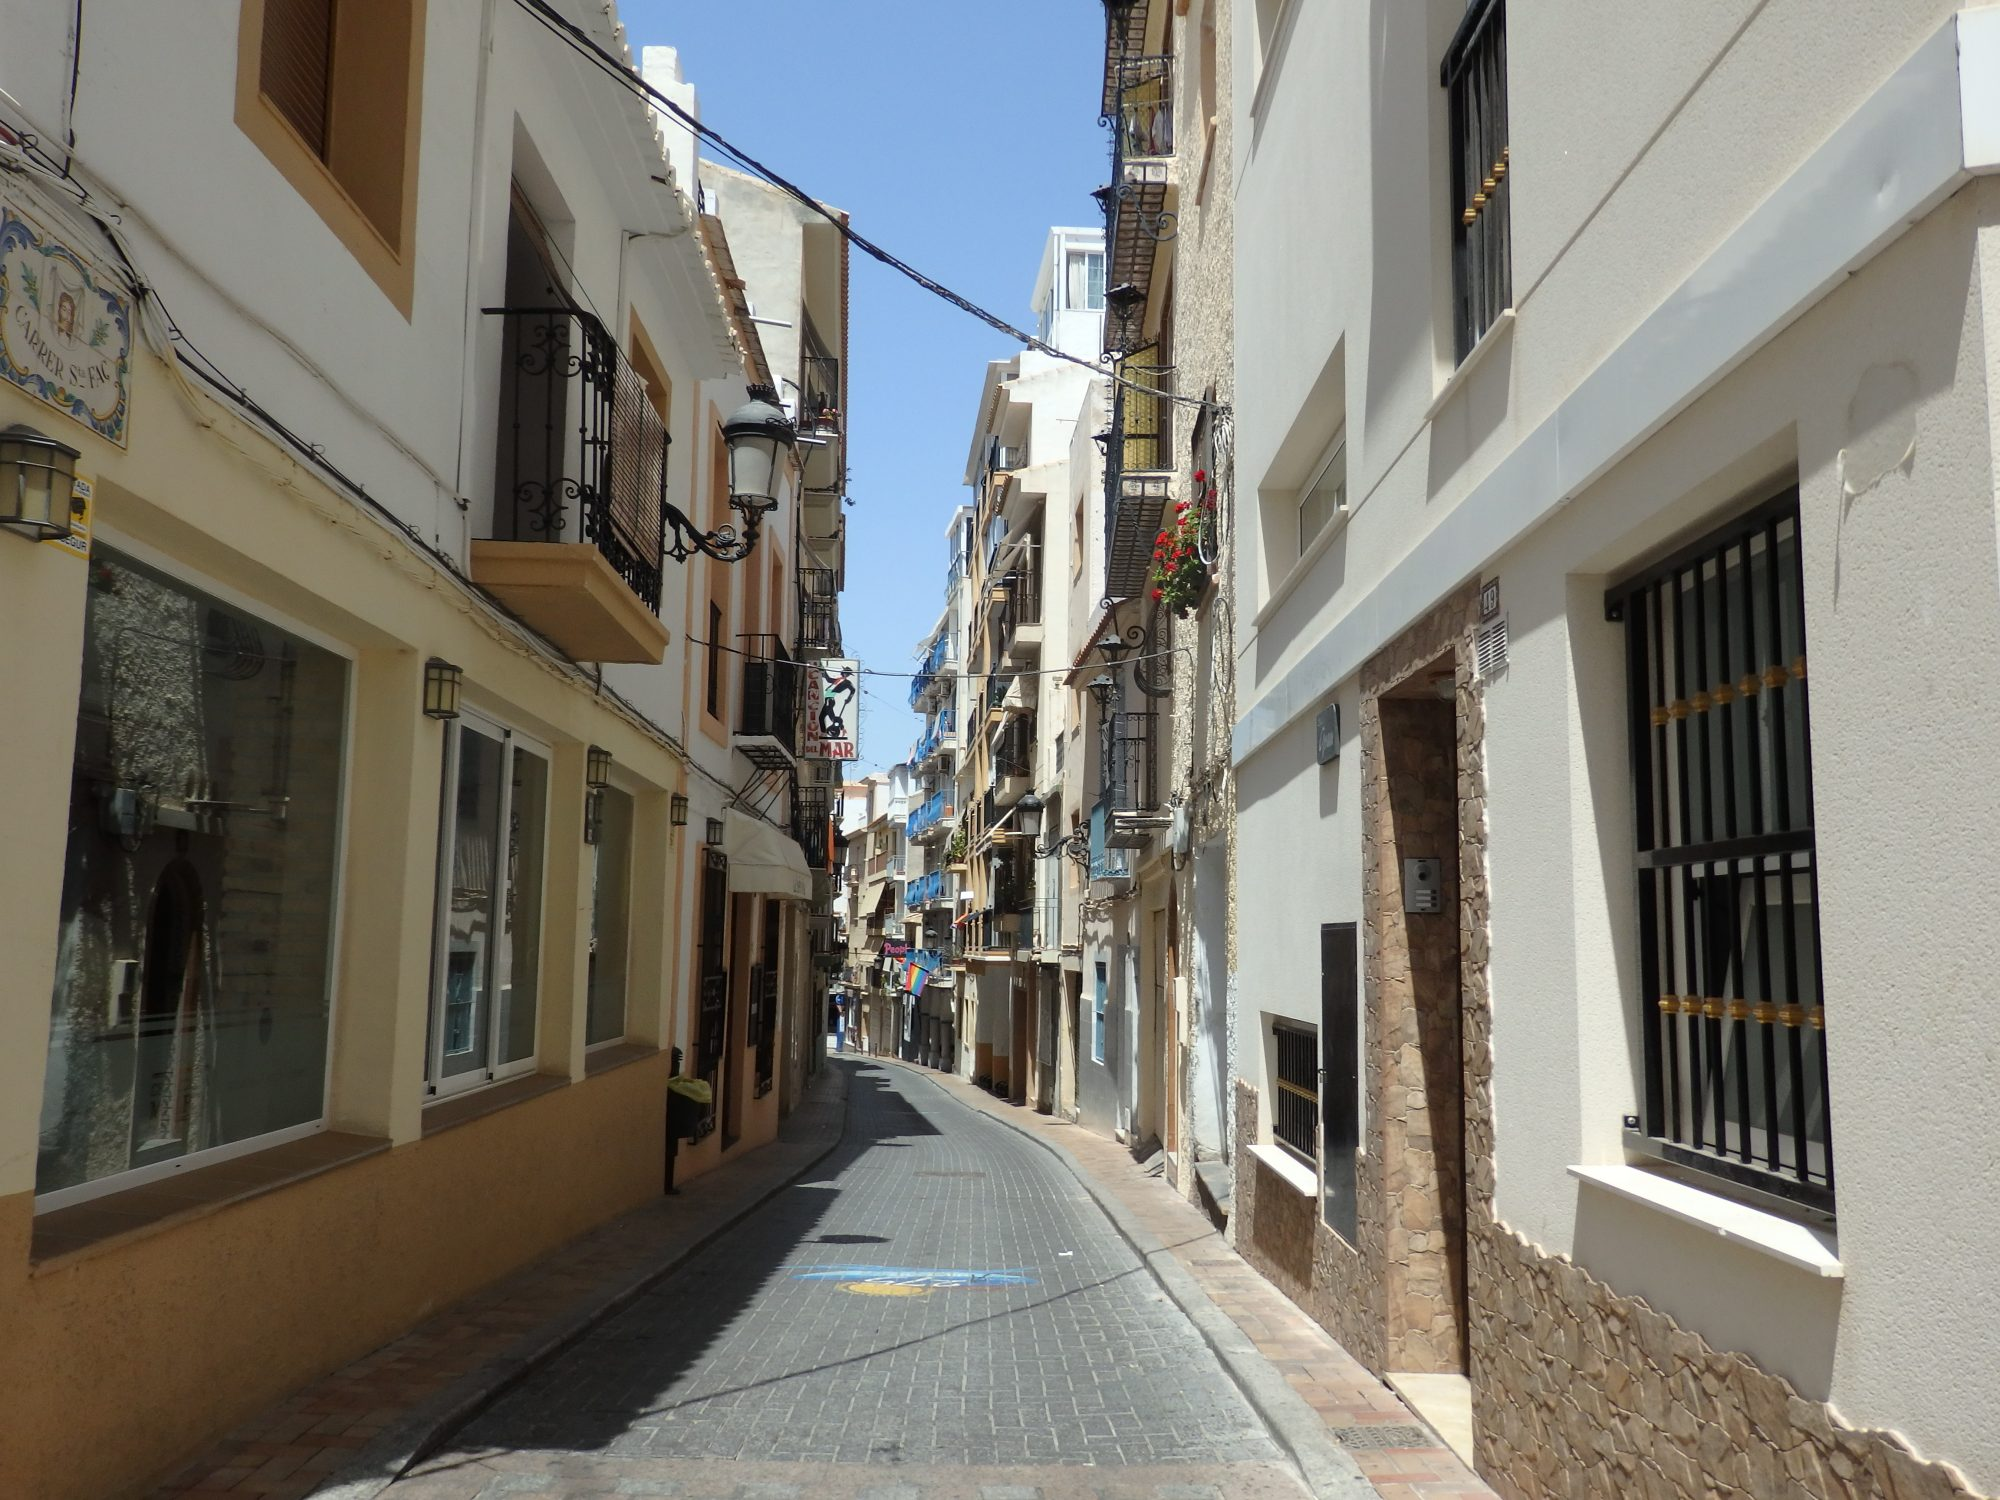 a street in the old section of Benidorm